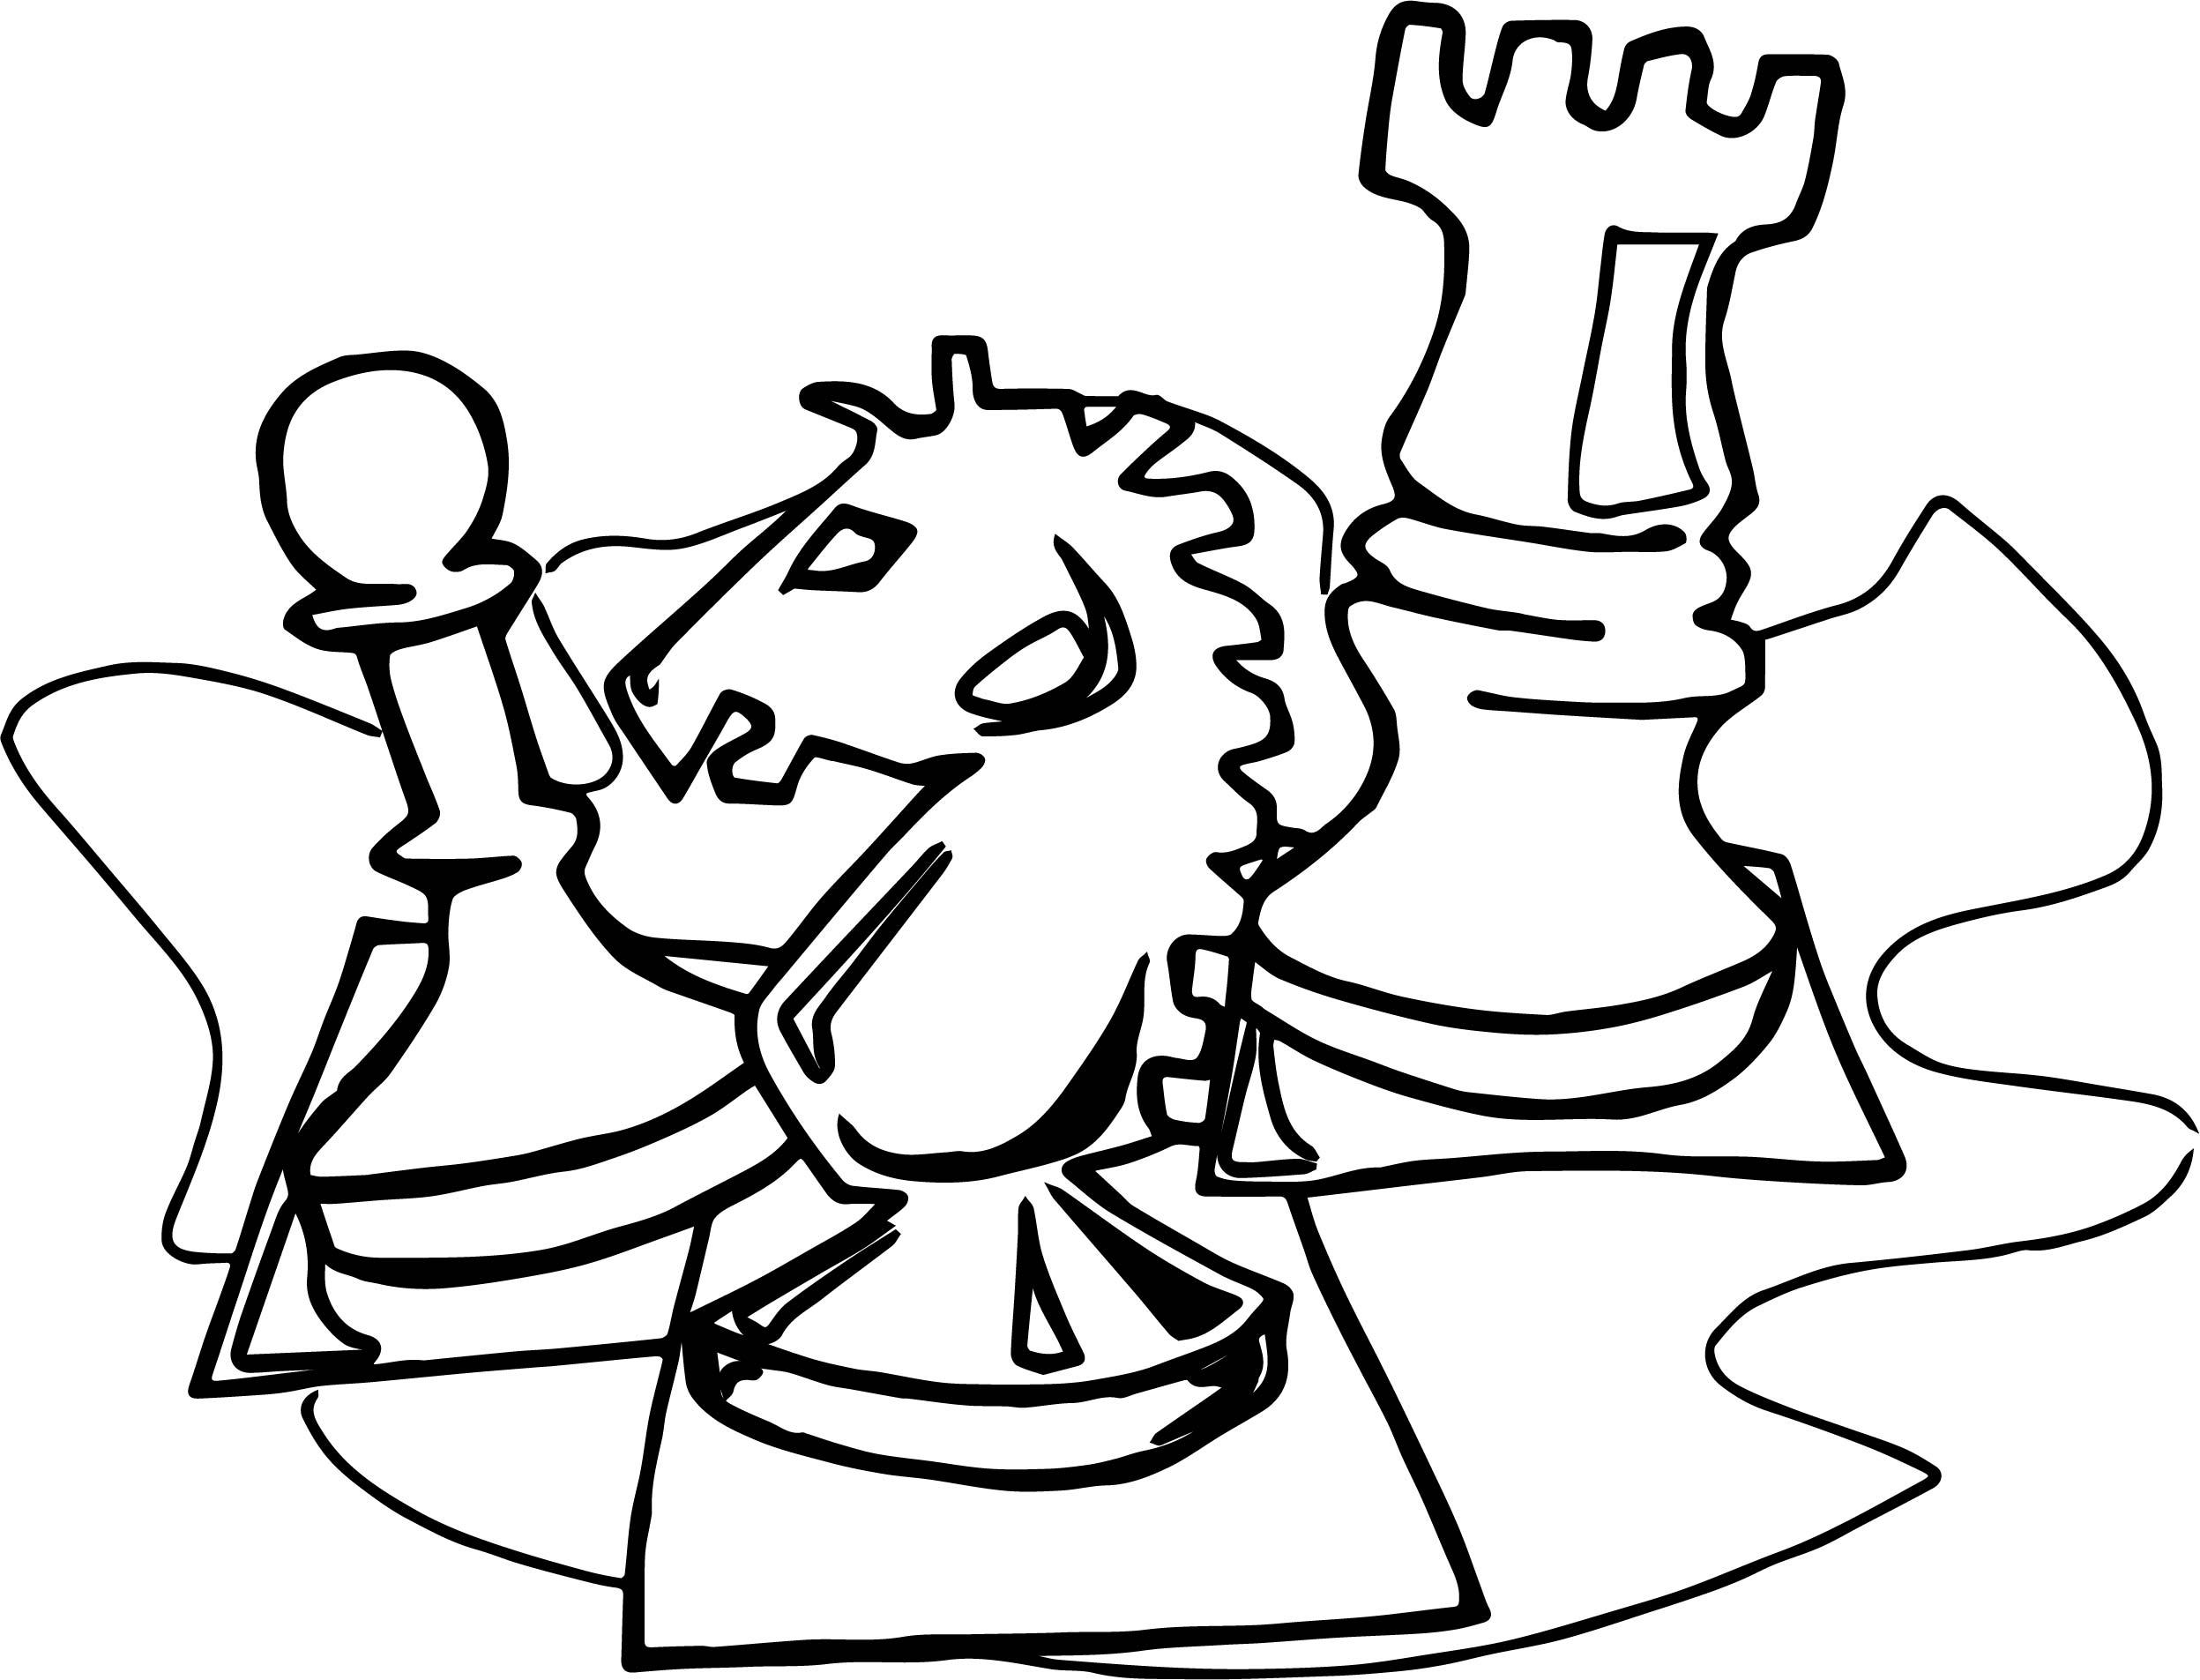 Board Chess Object Coloring Page